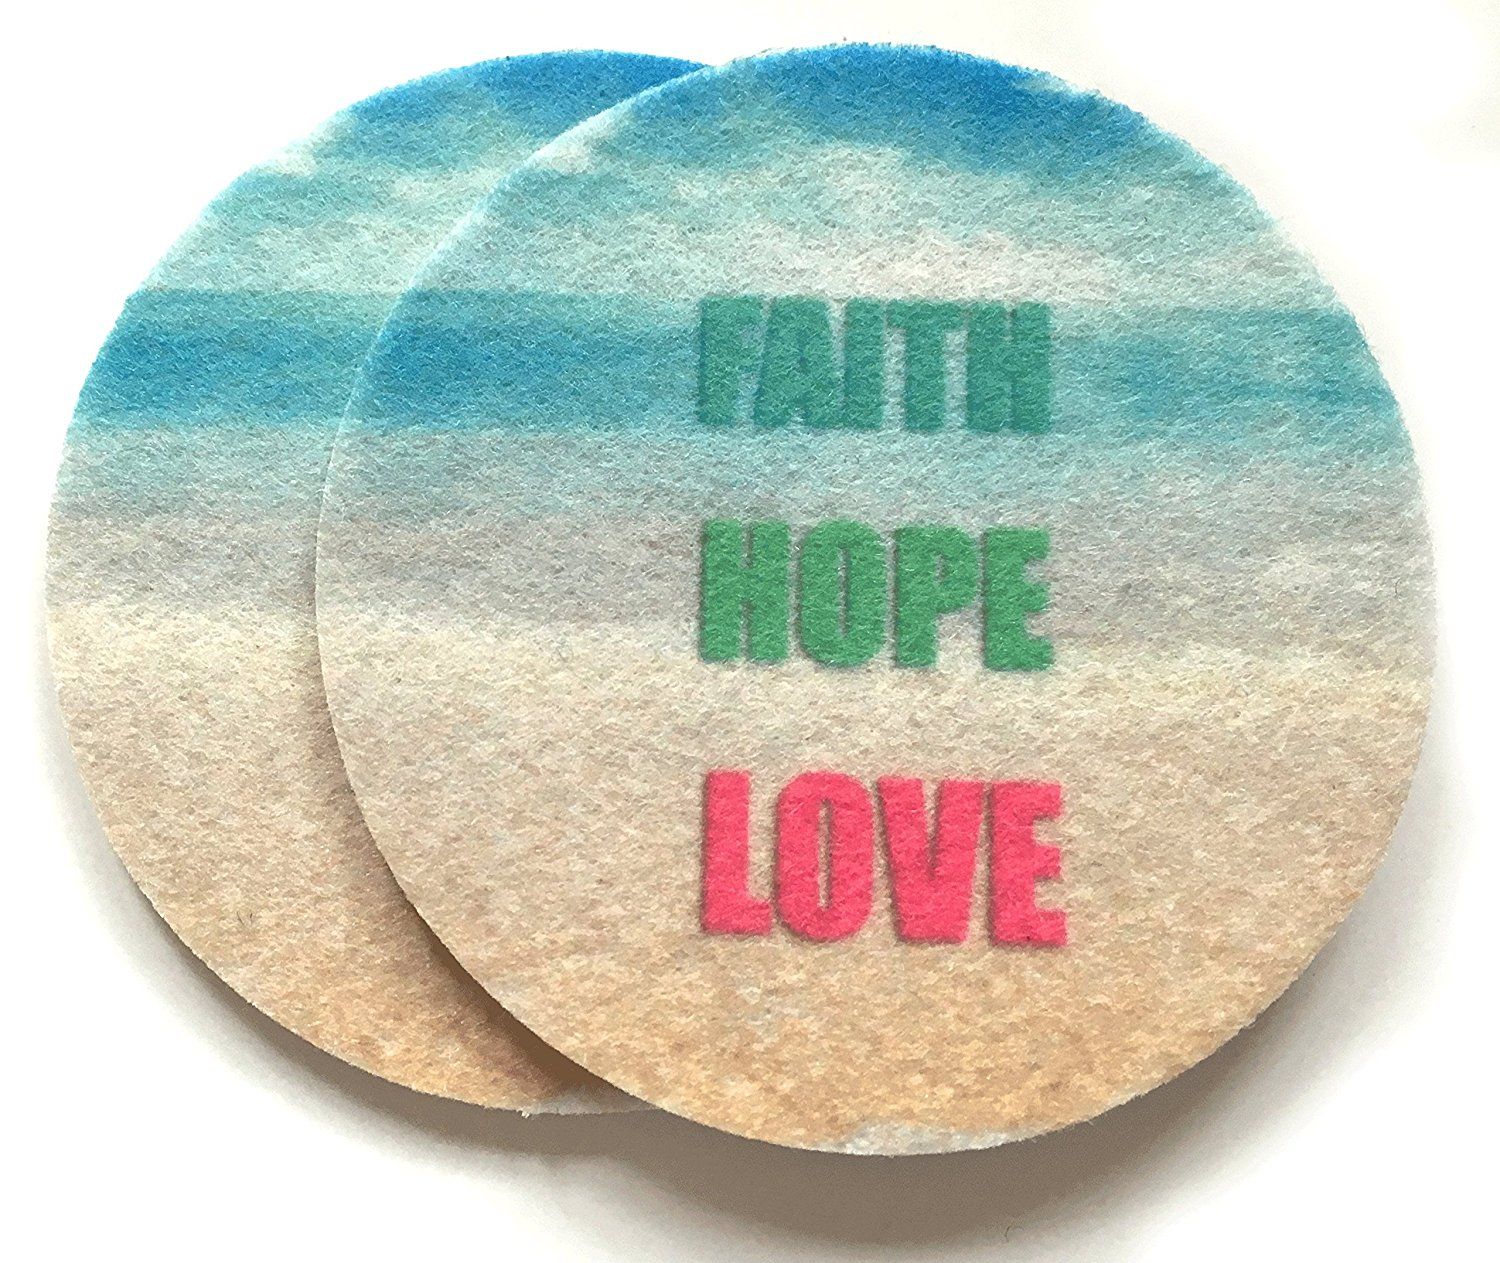 Car Cup Holder Coasters - Set of two super absorbent car coasters for your car's cup holder - Faith, Hope, Love car coasters